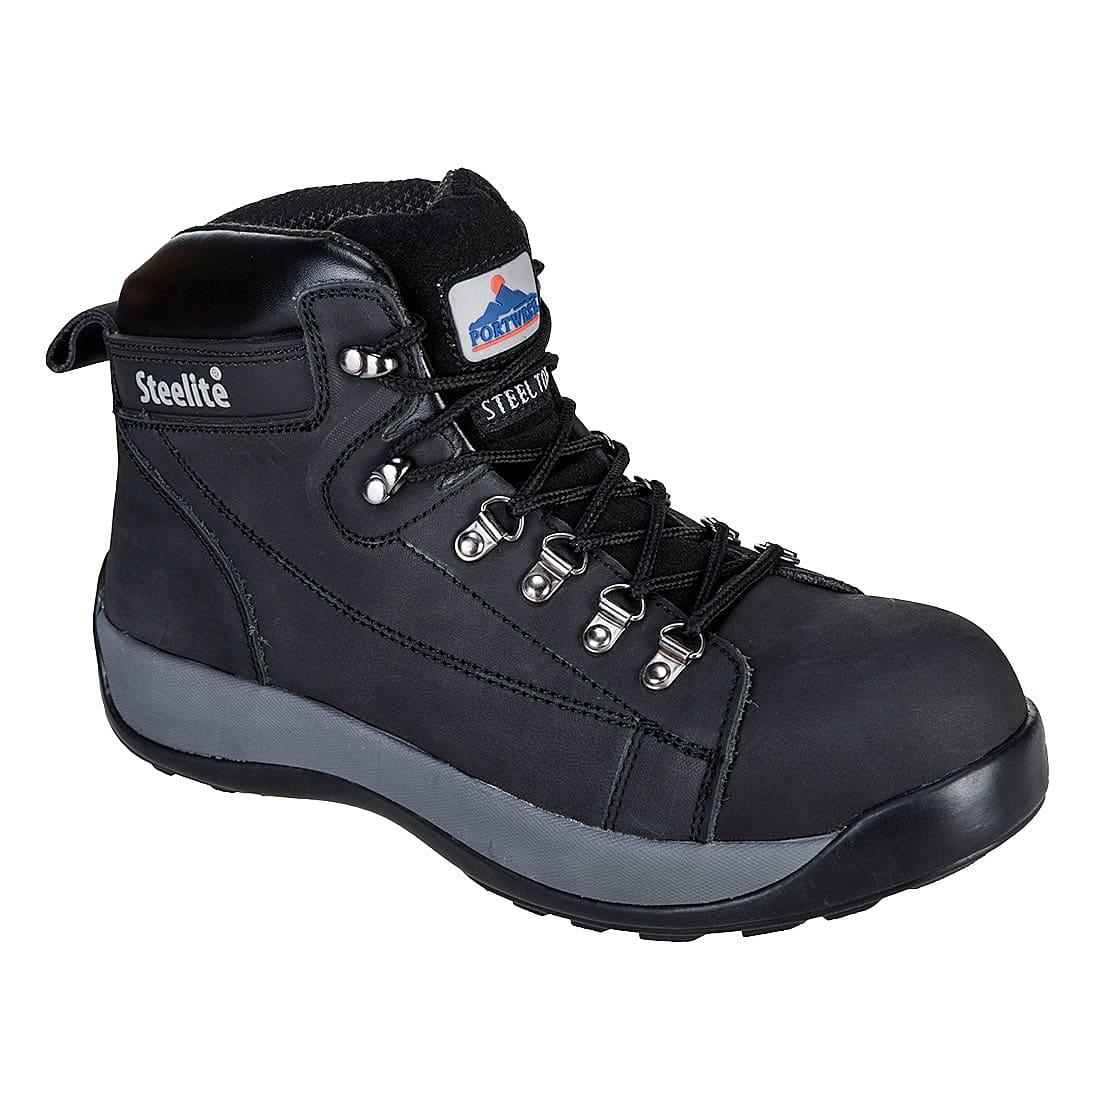 Portwest Steelite Mid Cut Nubuck Boots SB HRO in Black (Product Code: FW31)